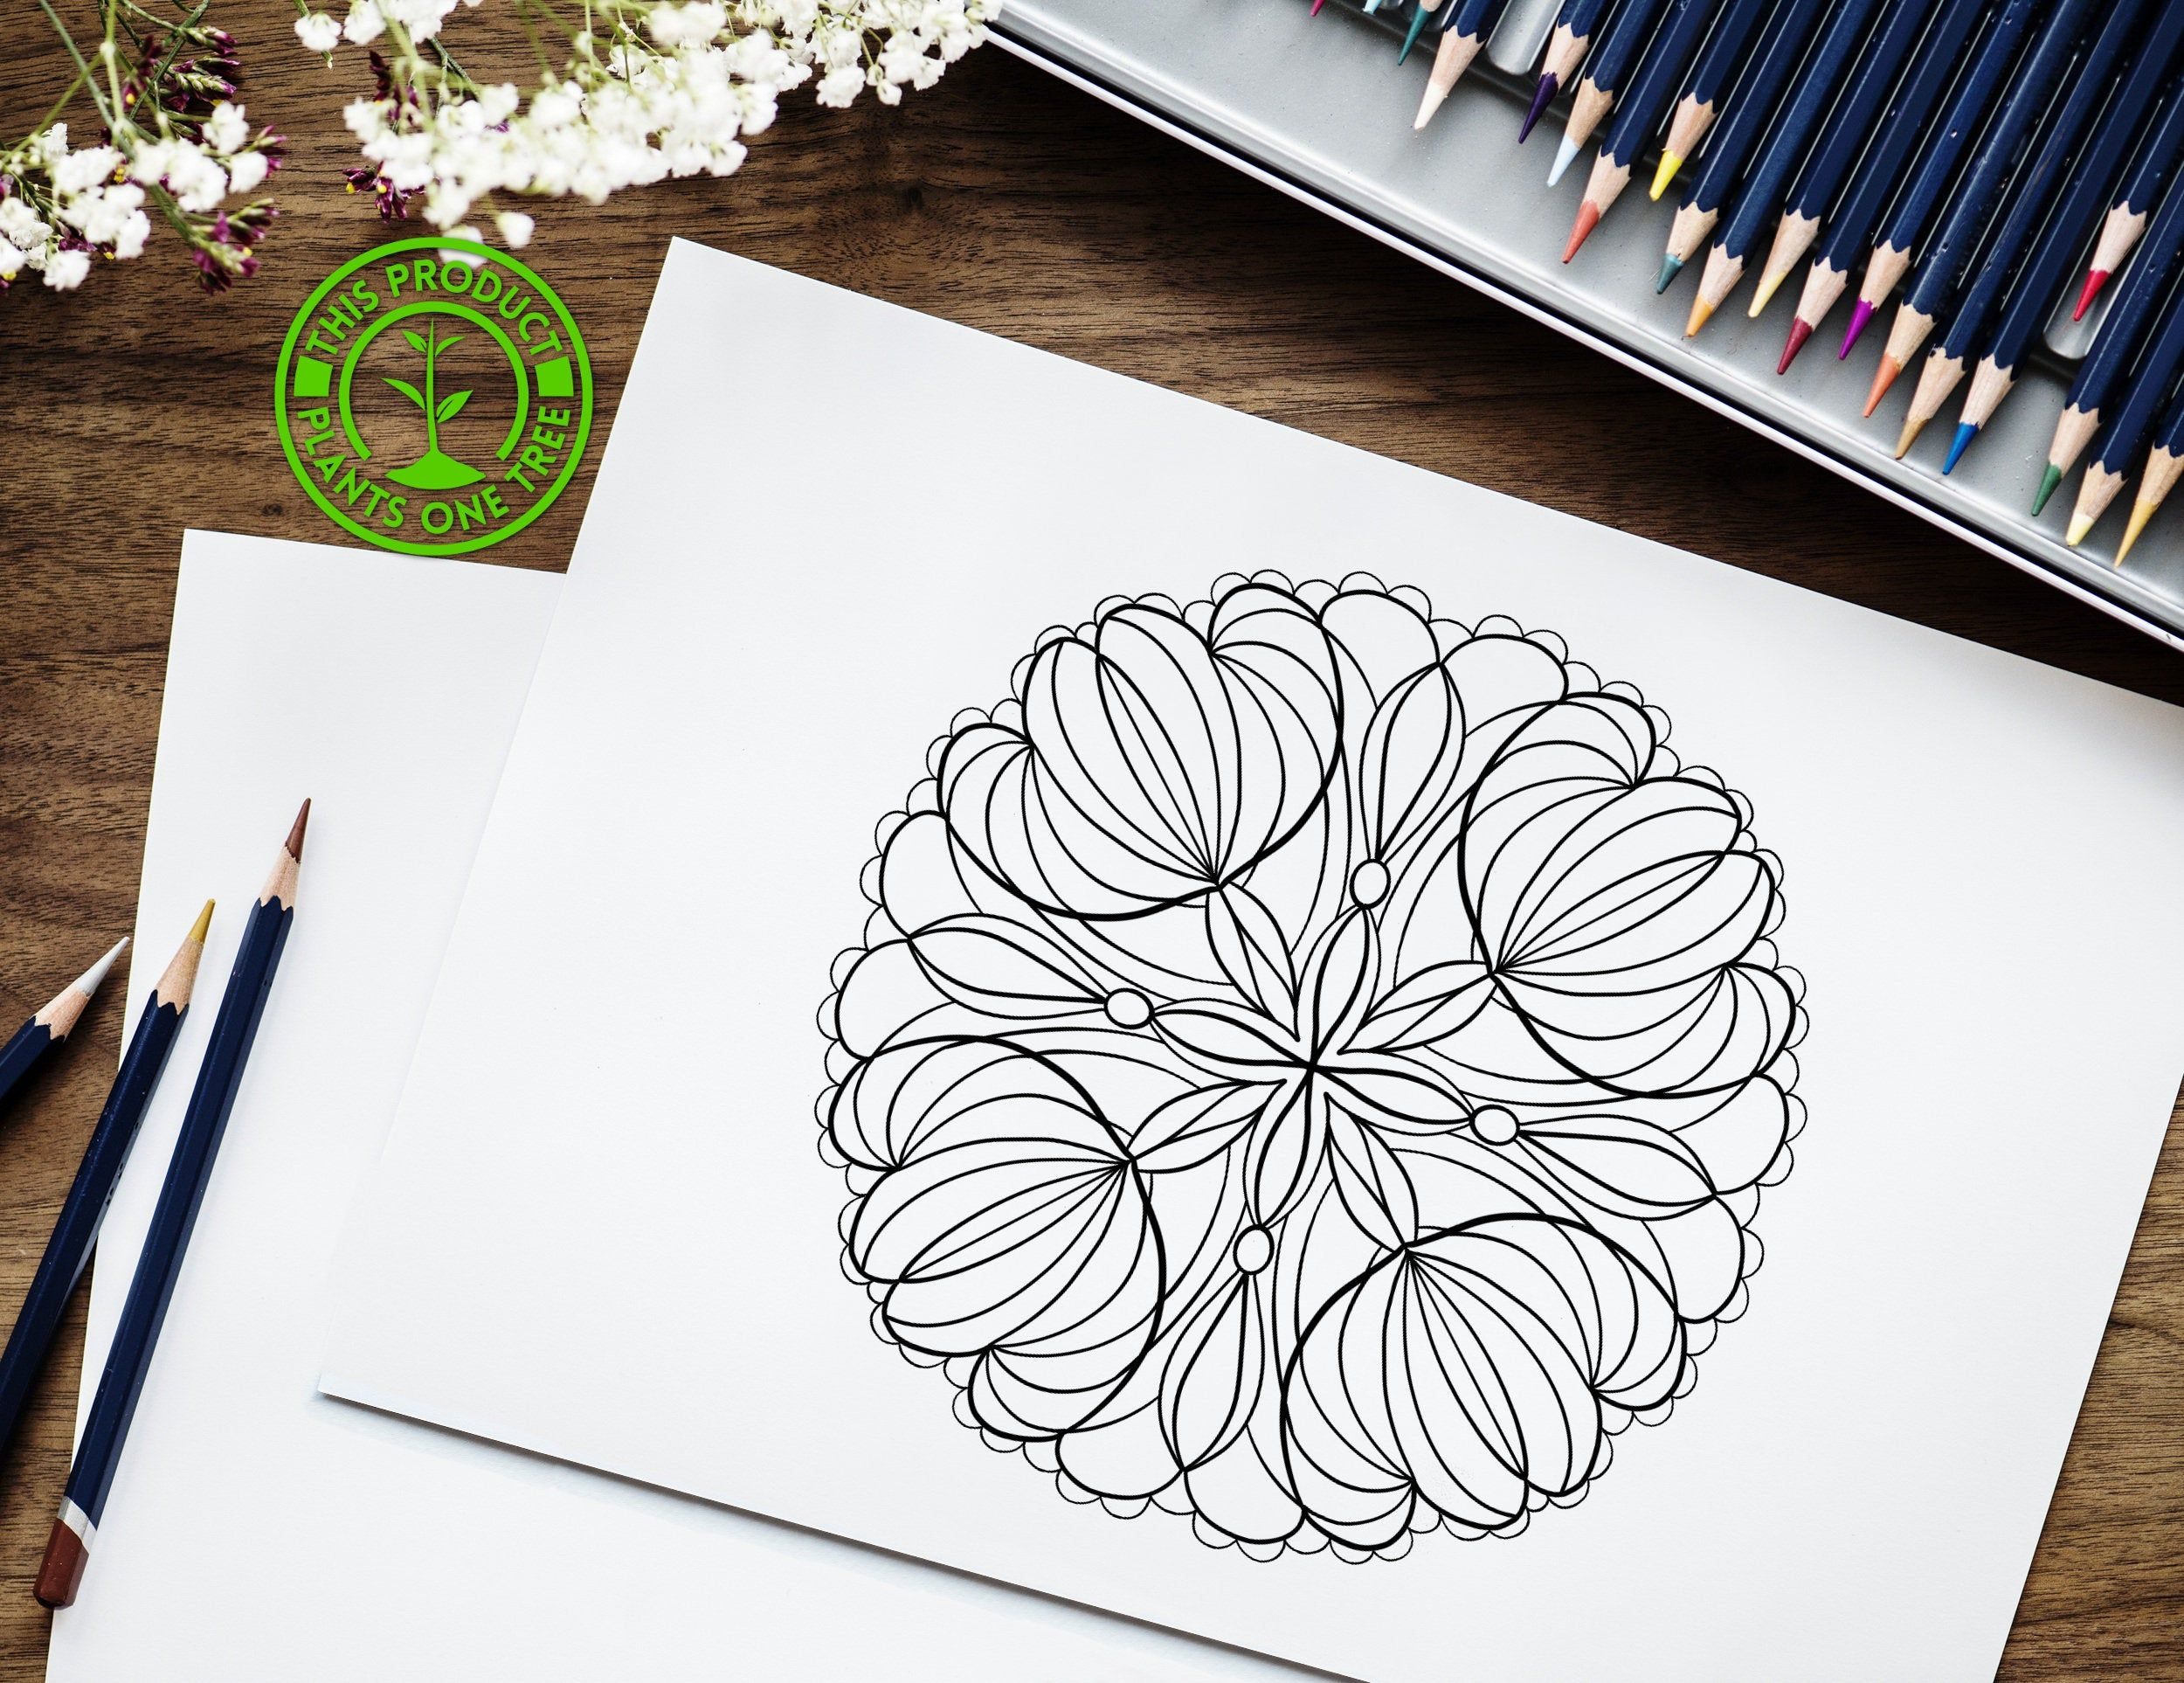 Printable Mandala Coloring Pages For Adults Instant Download Digital Coloring Sheet Procreate Colori Mandala Coloring Pages Coloring Pages Gel Pens Coloring